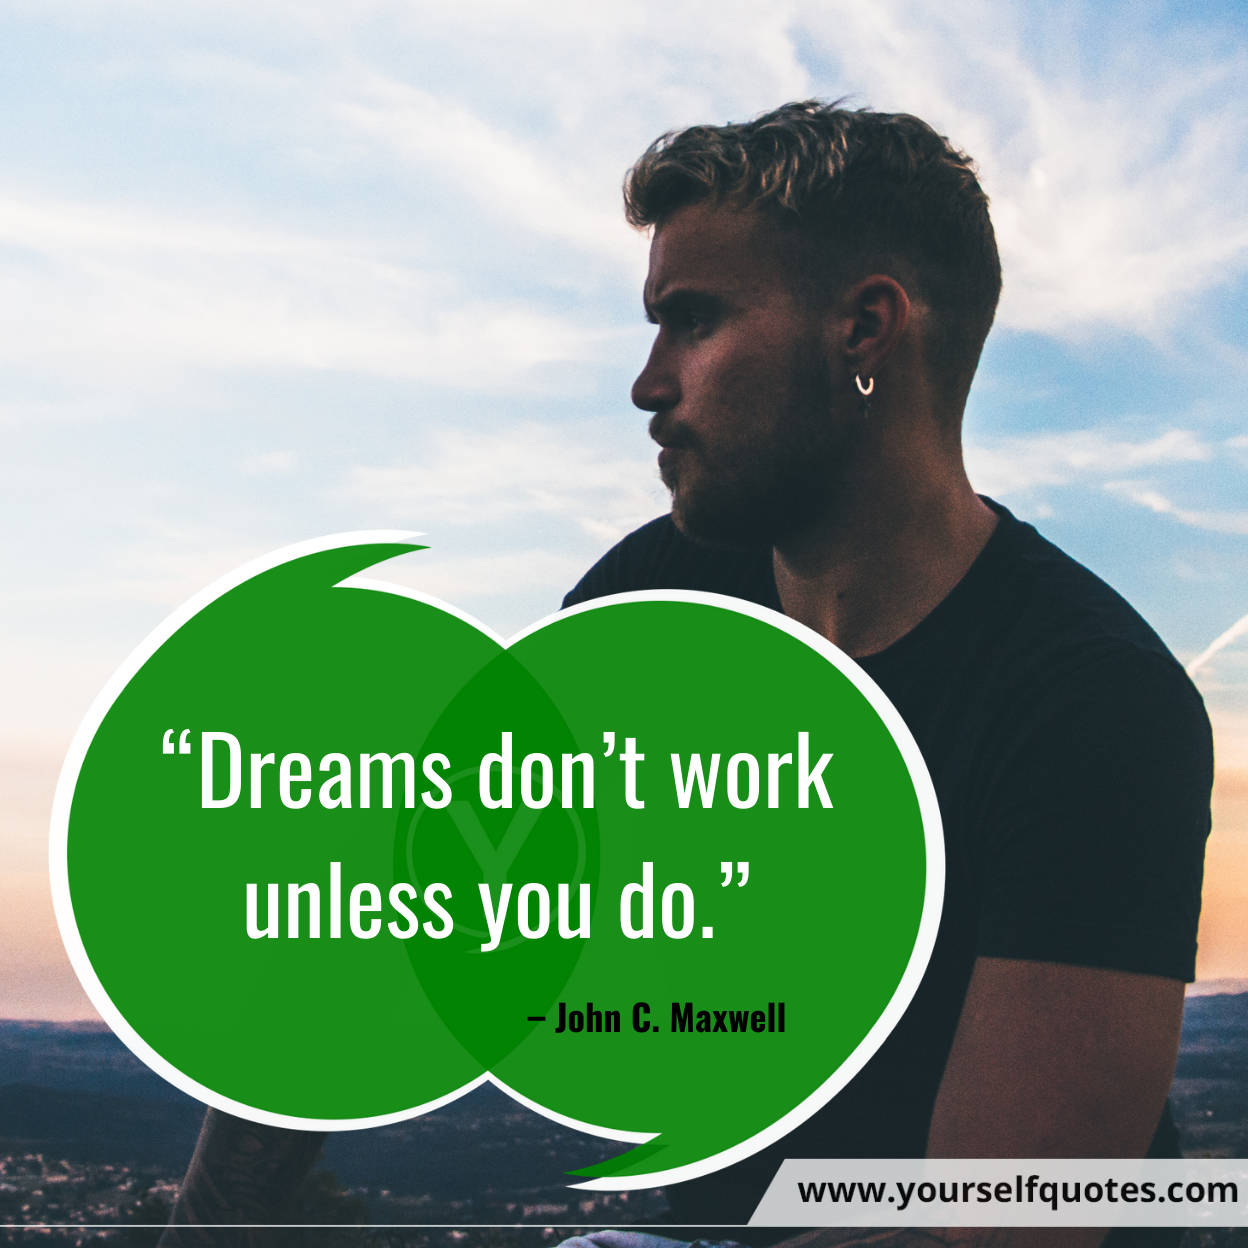 Quotes on Dream by John C. Maxwell